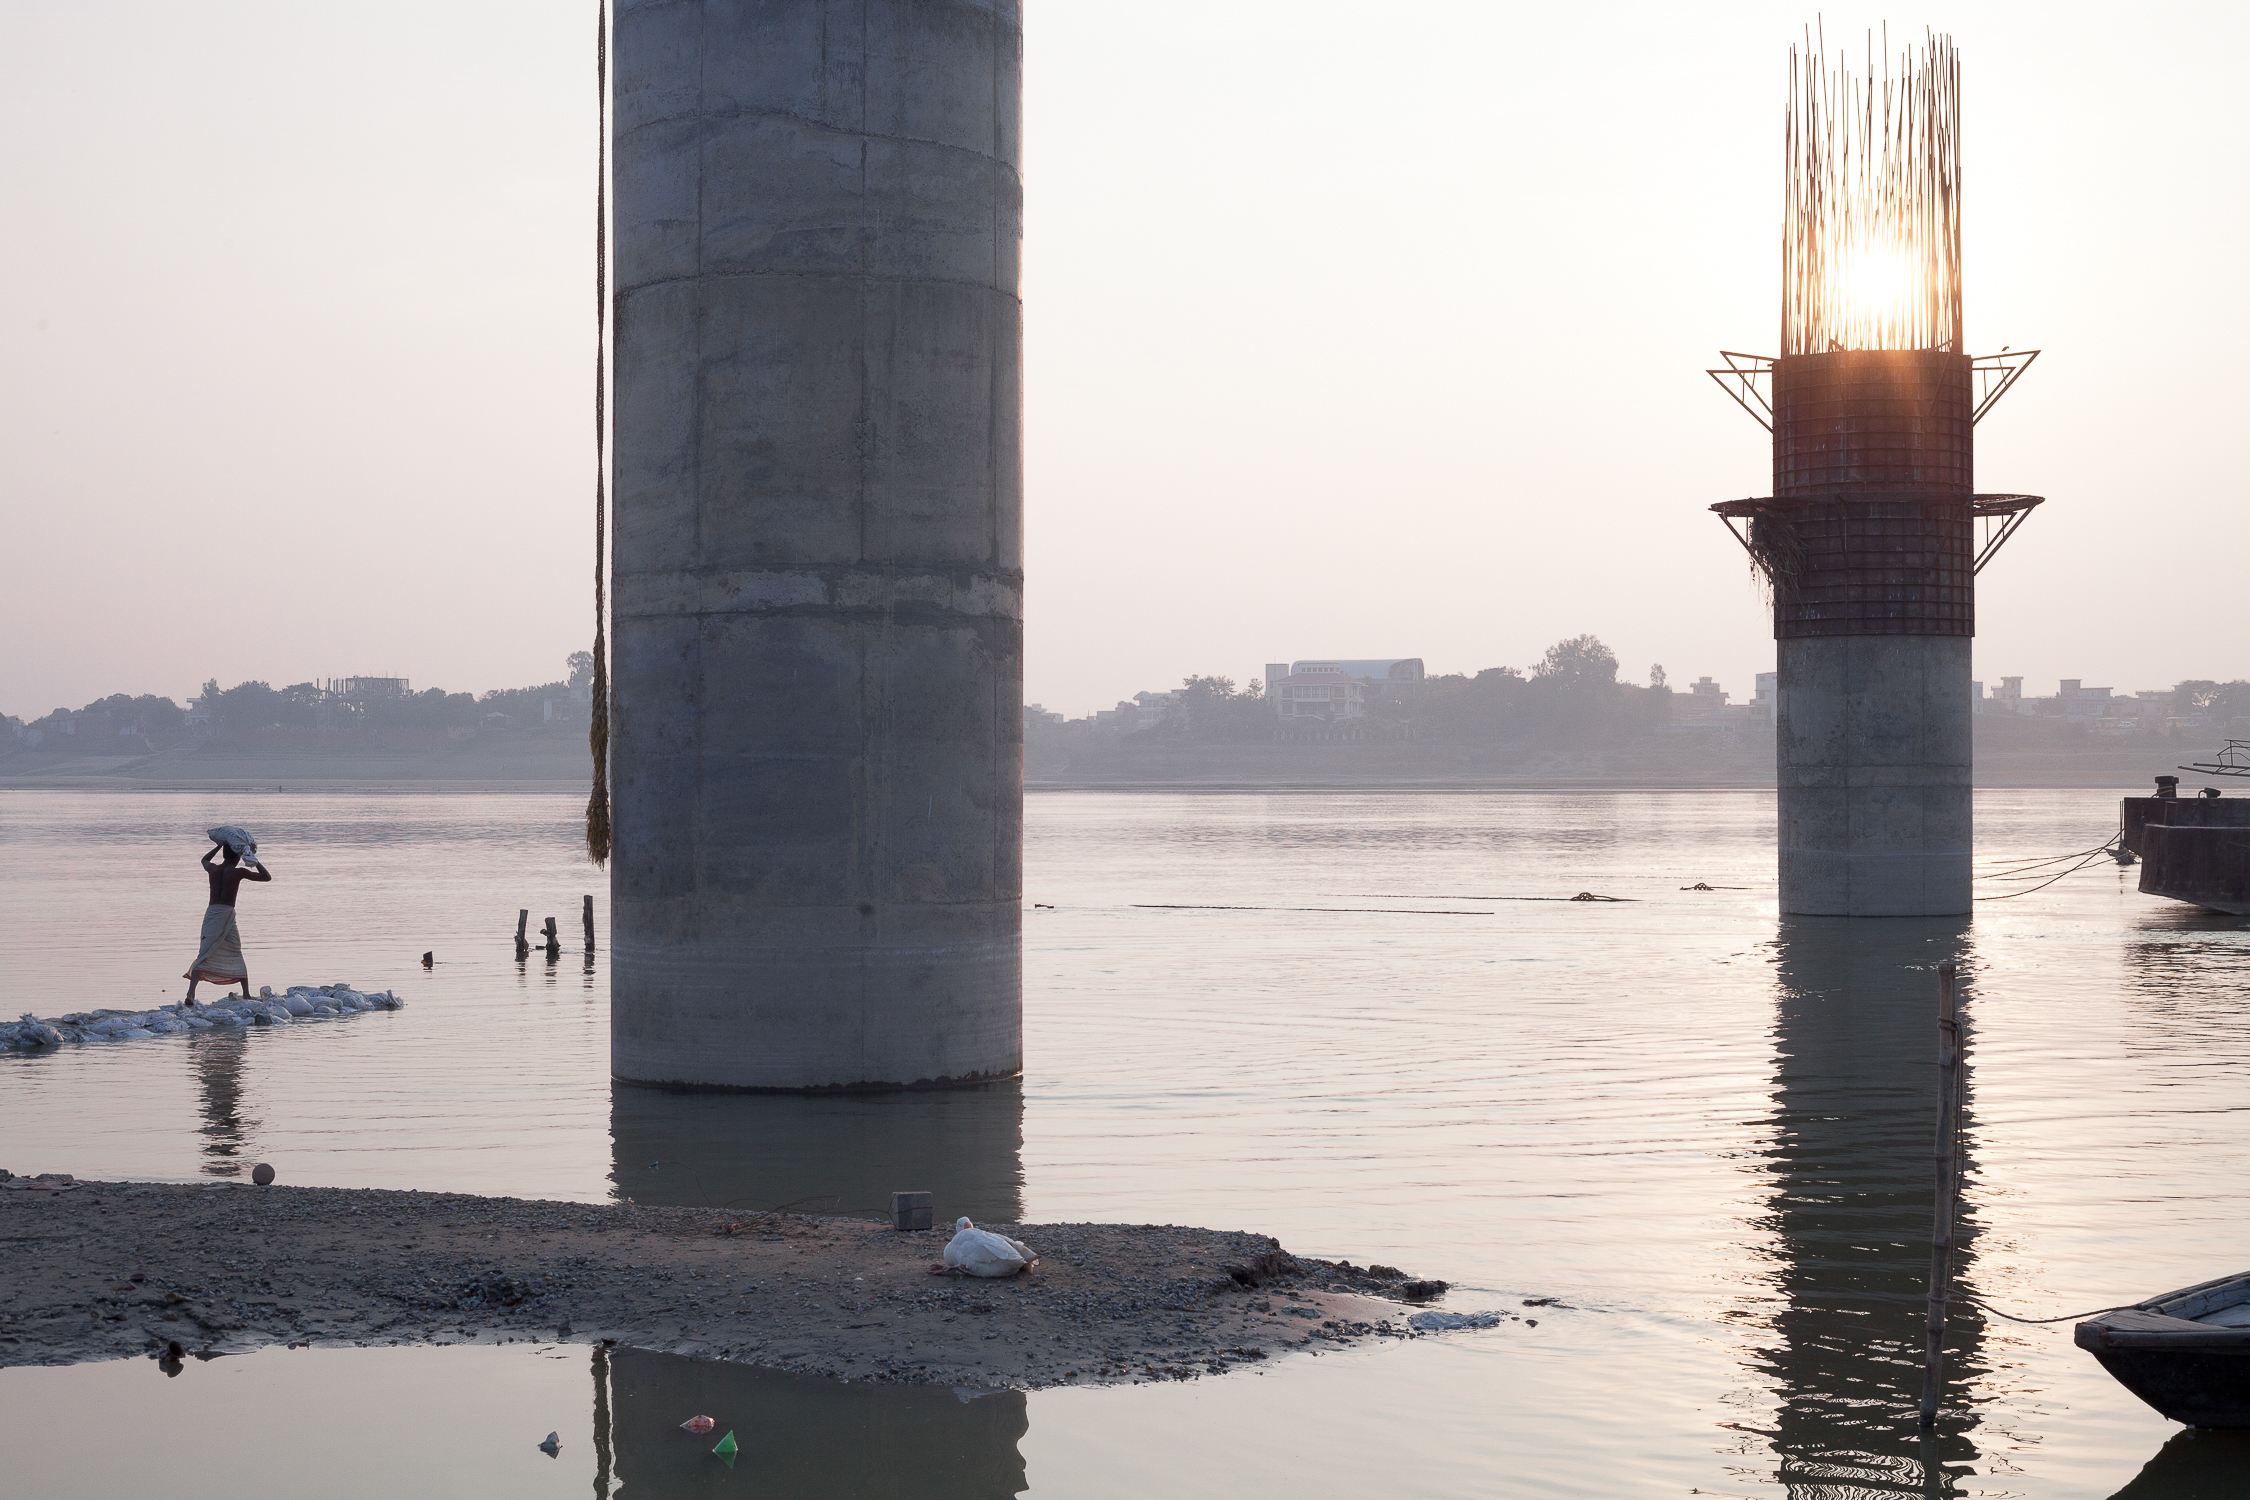 Varanasi River Crossing Architecture Photography London